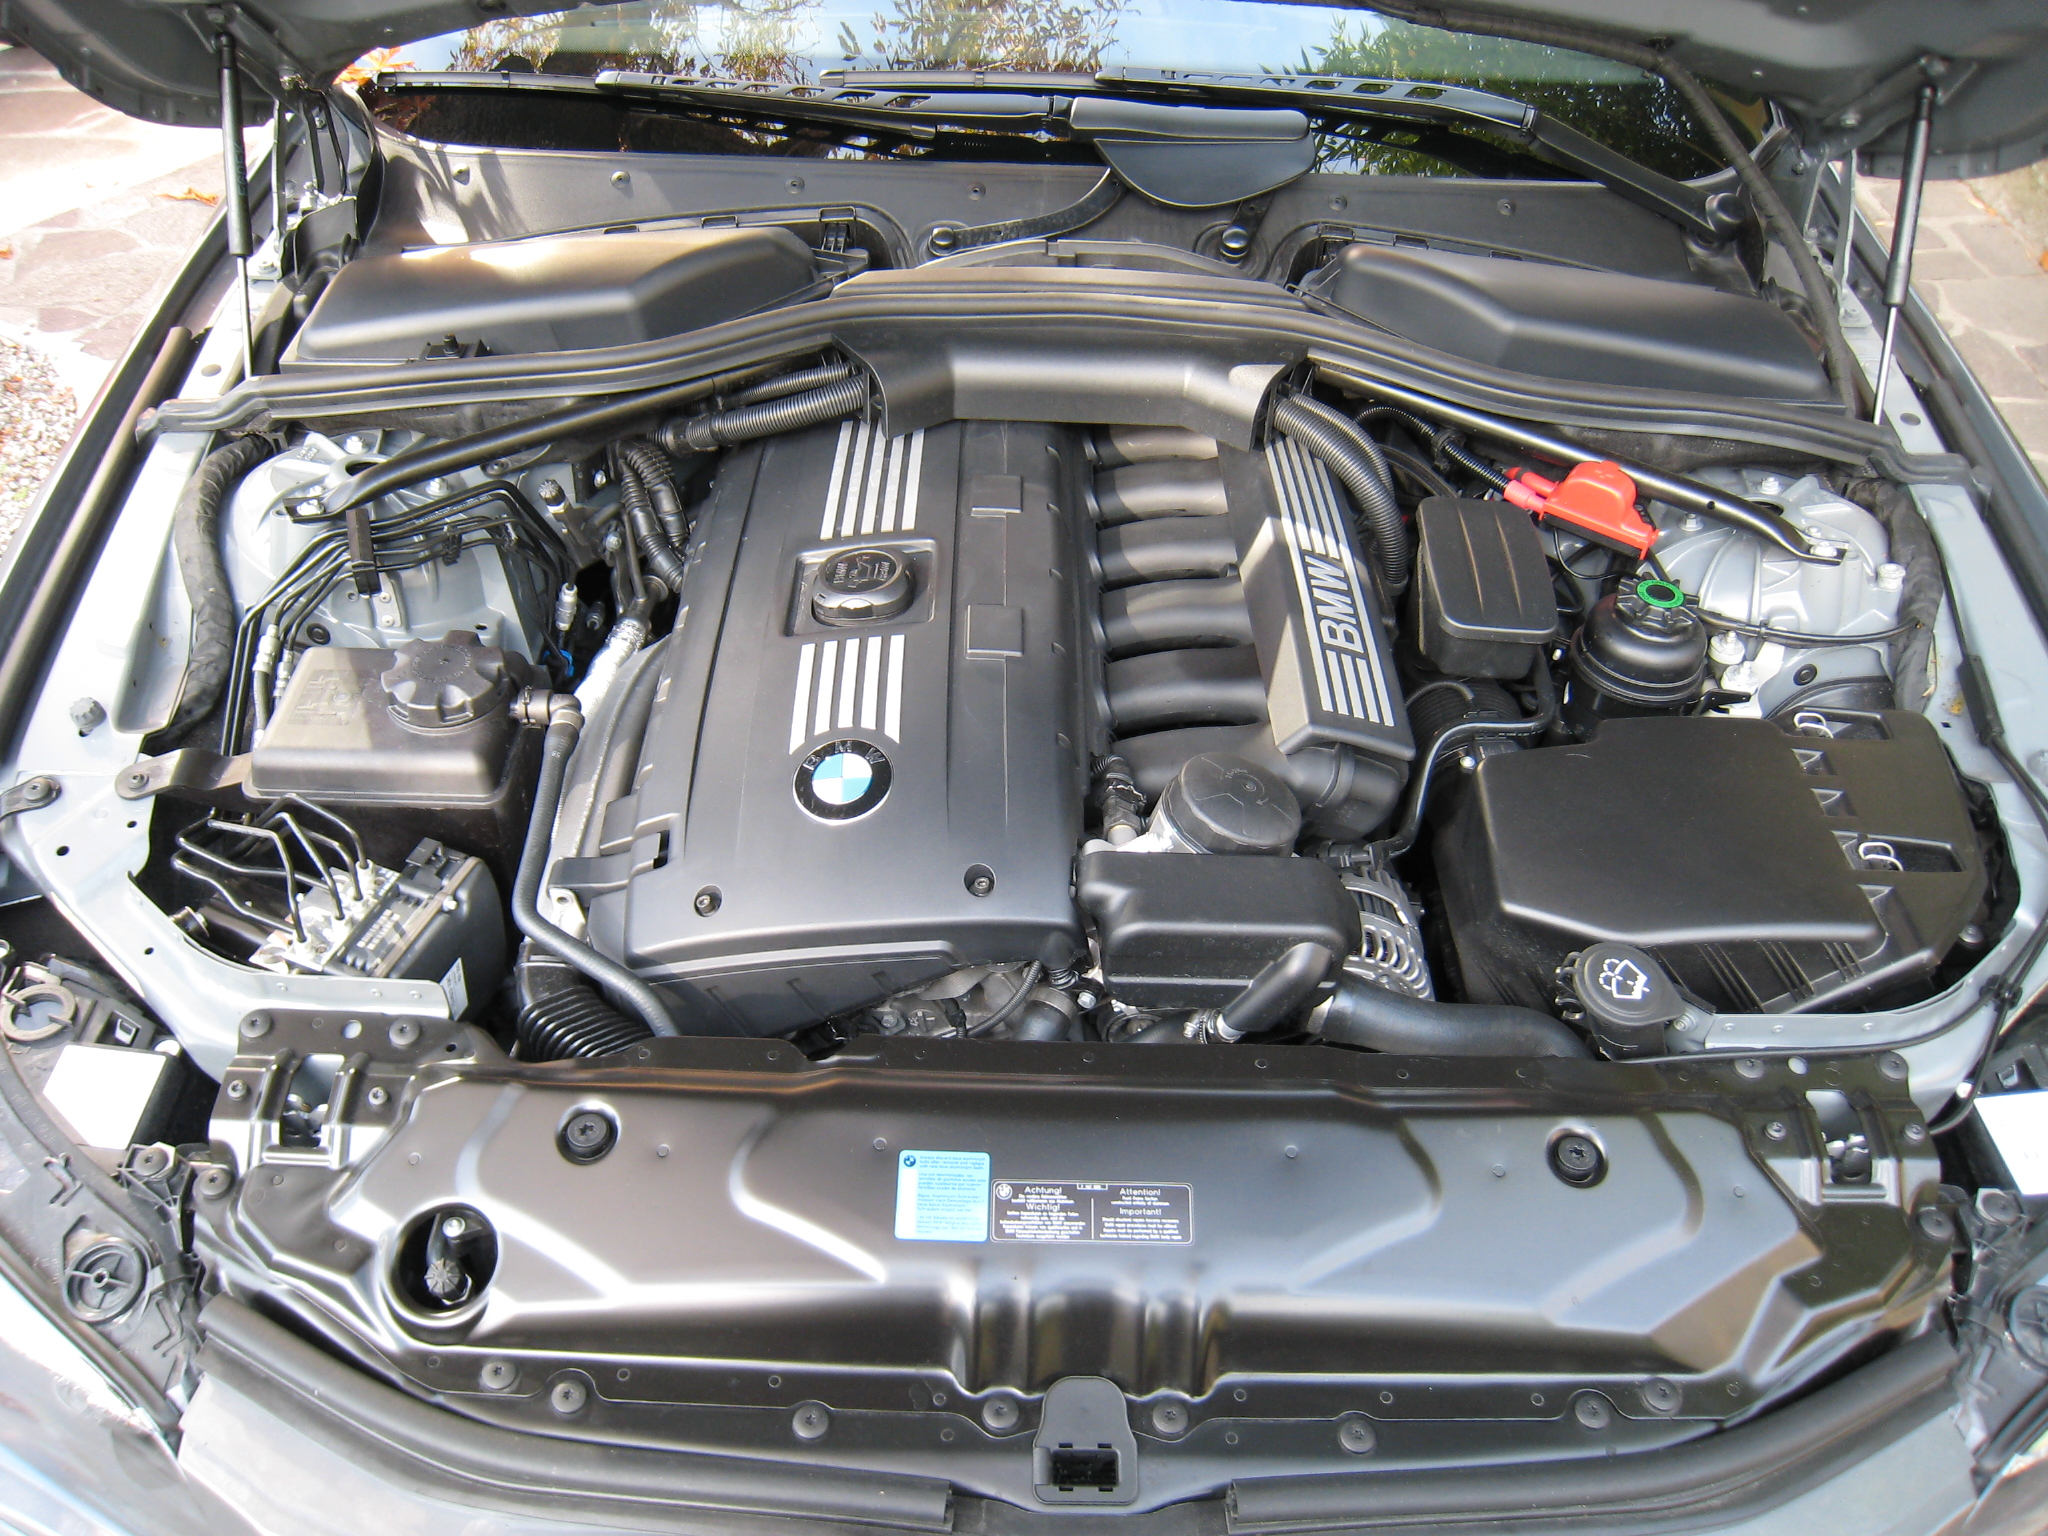 2009 bmw 535i engine diagram best wiring library 1986 BMW 535I Engine Diagram bmw n53 wikipedia rh en wikipedia org bmw 535i gt 2009 bmw 535i engine diagram